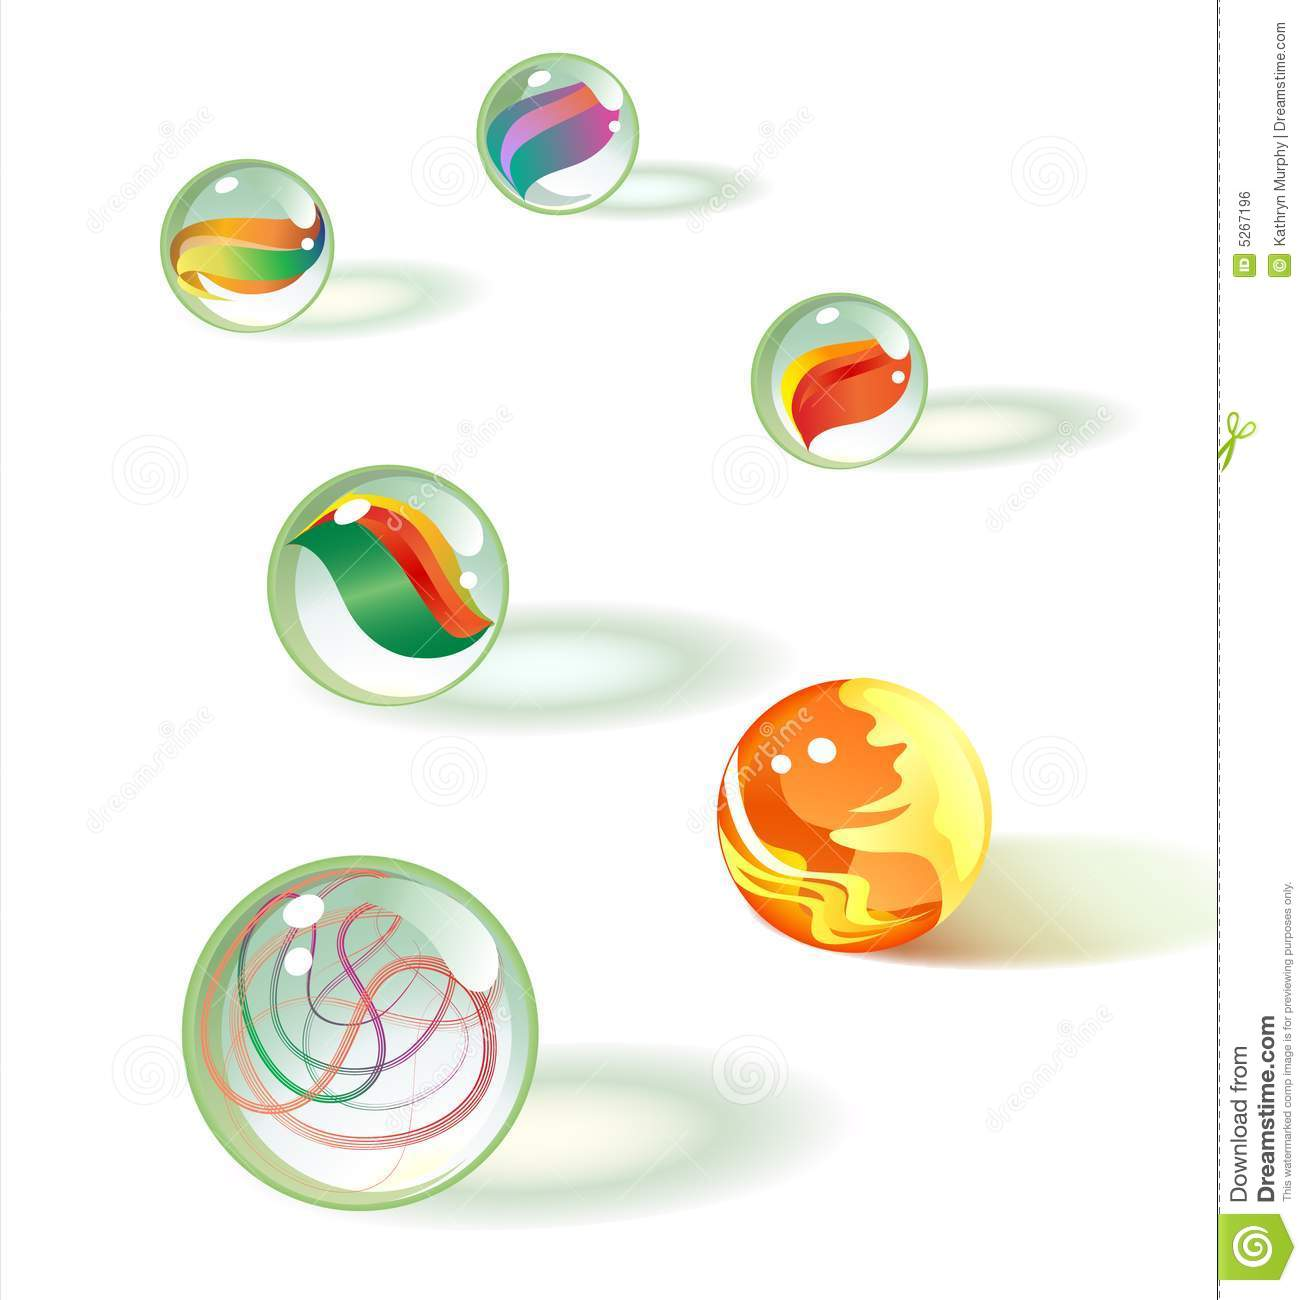 Glass marbles clipart #9